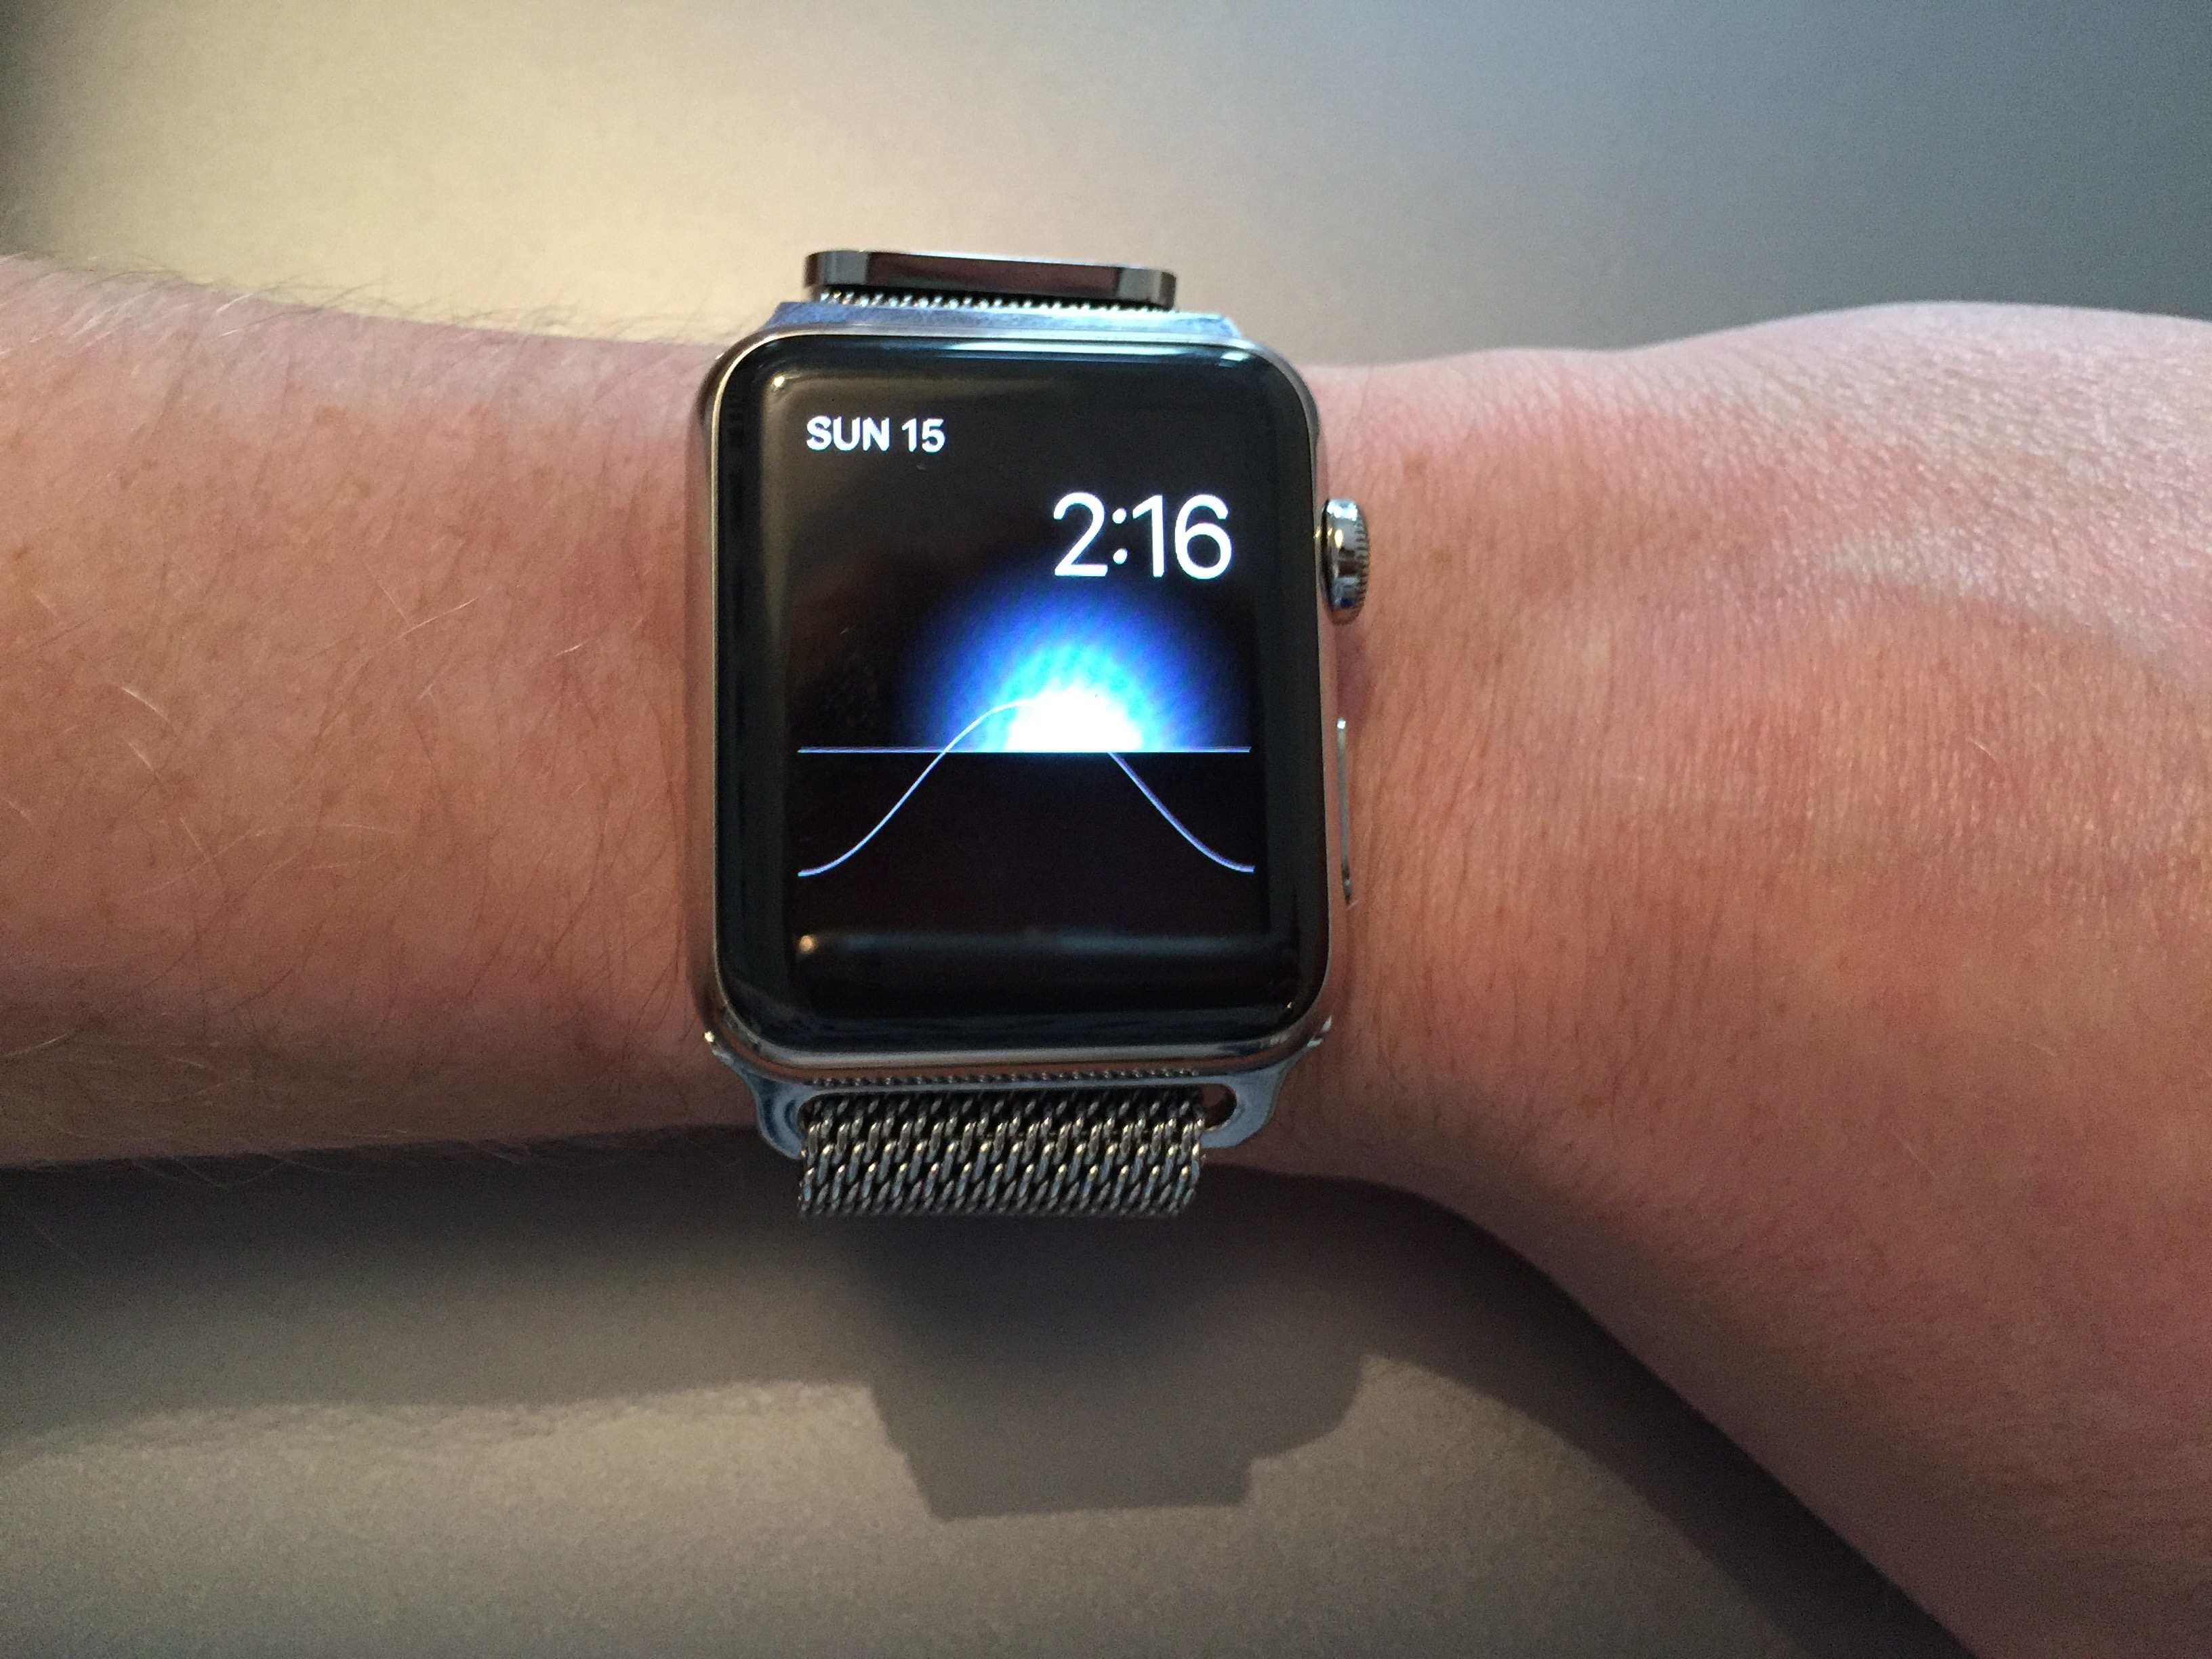 Review: Baseus offers a lesser-priced Milanese Loop for Apple Watch